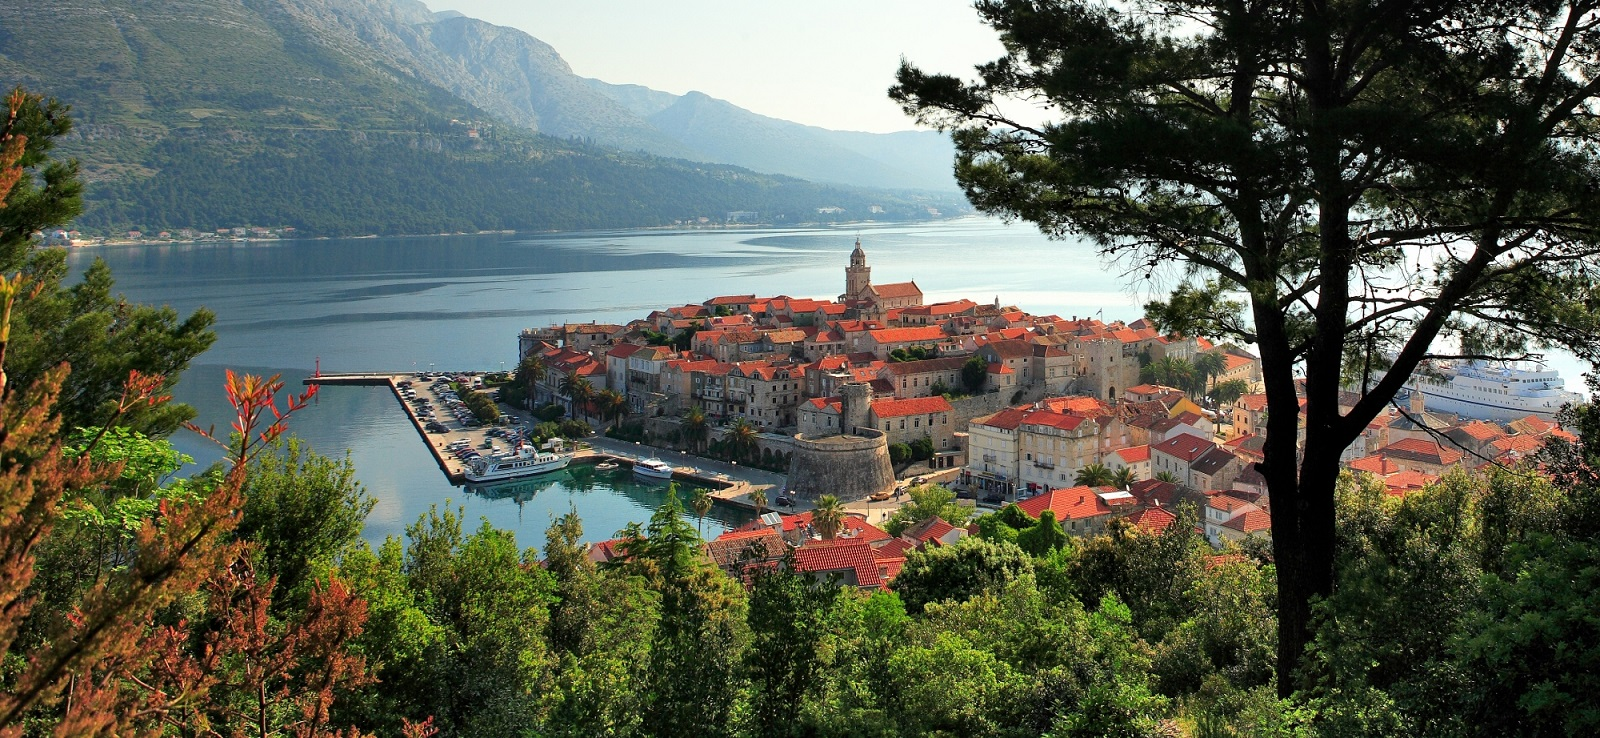 Korcula Credits to Croatian National Tourist Board